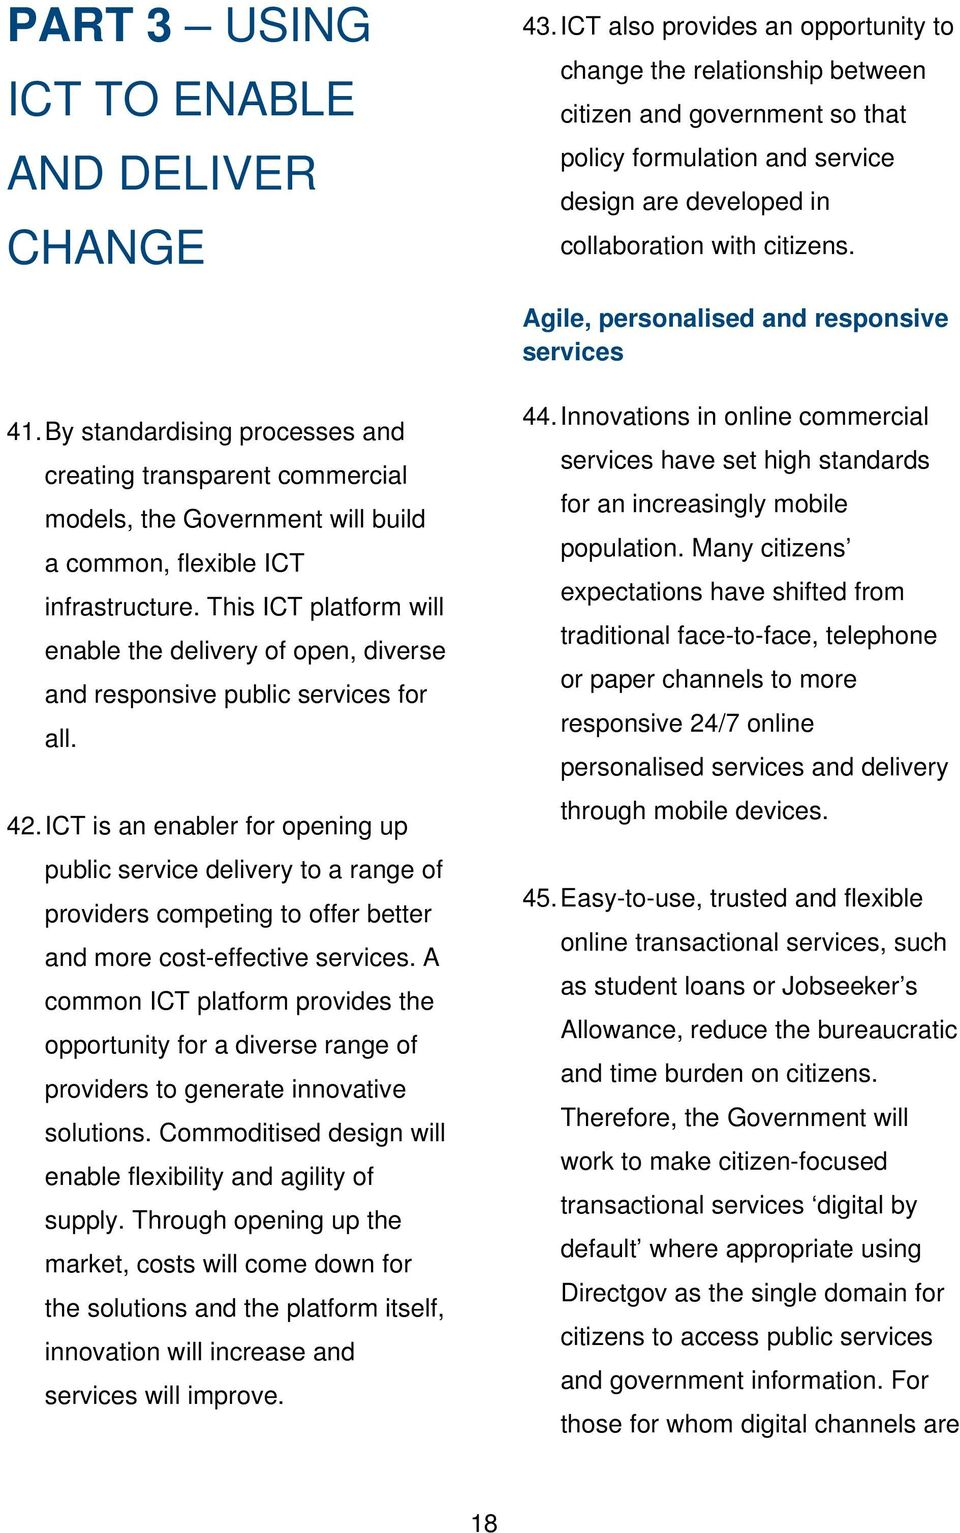 Agile, personalised and responsive services 41. By standardising processes and creating transparent commercial models, the Government will build a common, flexible ICT infrastructure.